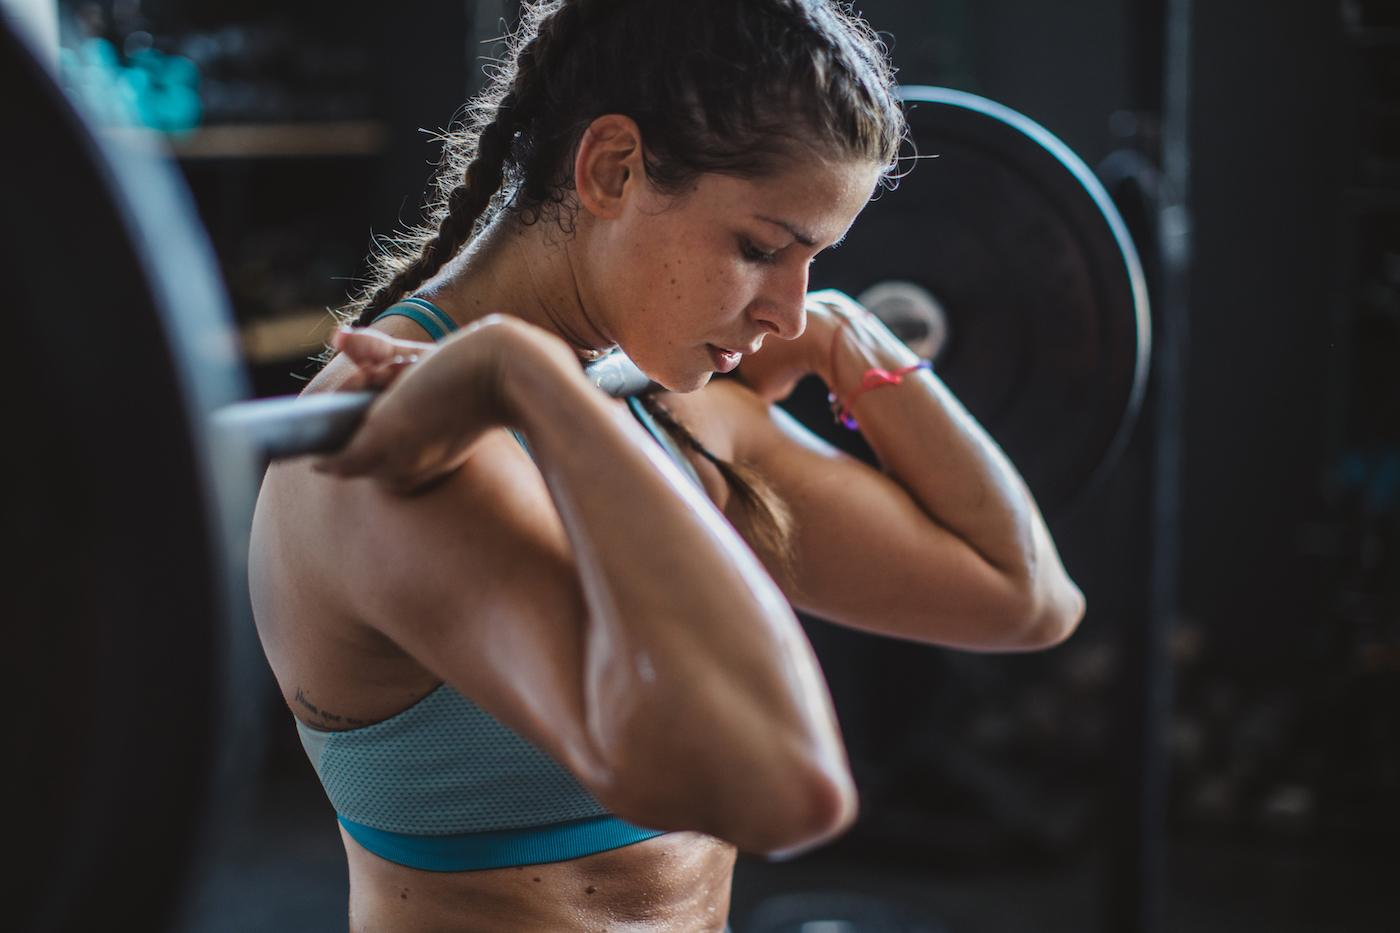 Thumbnail for This commonly overlooked body part is the key to full-body strength